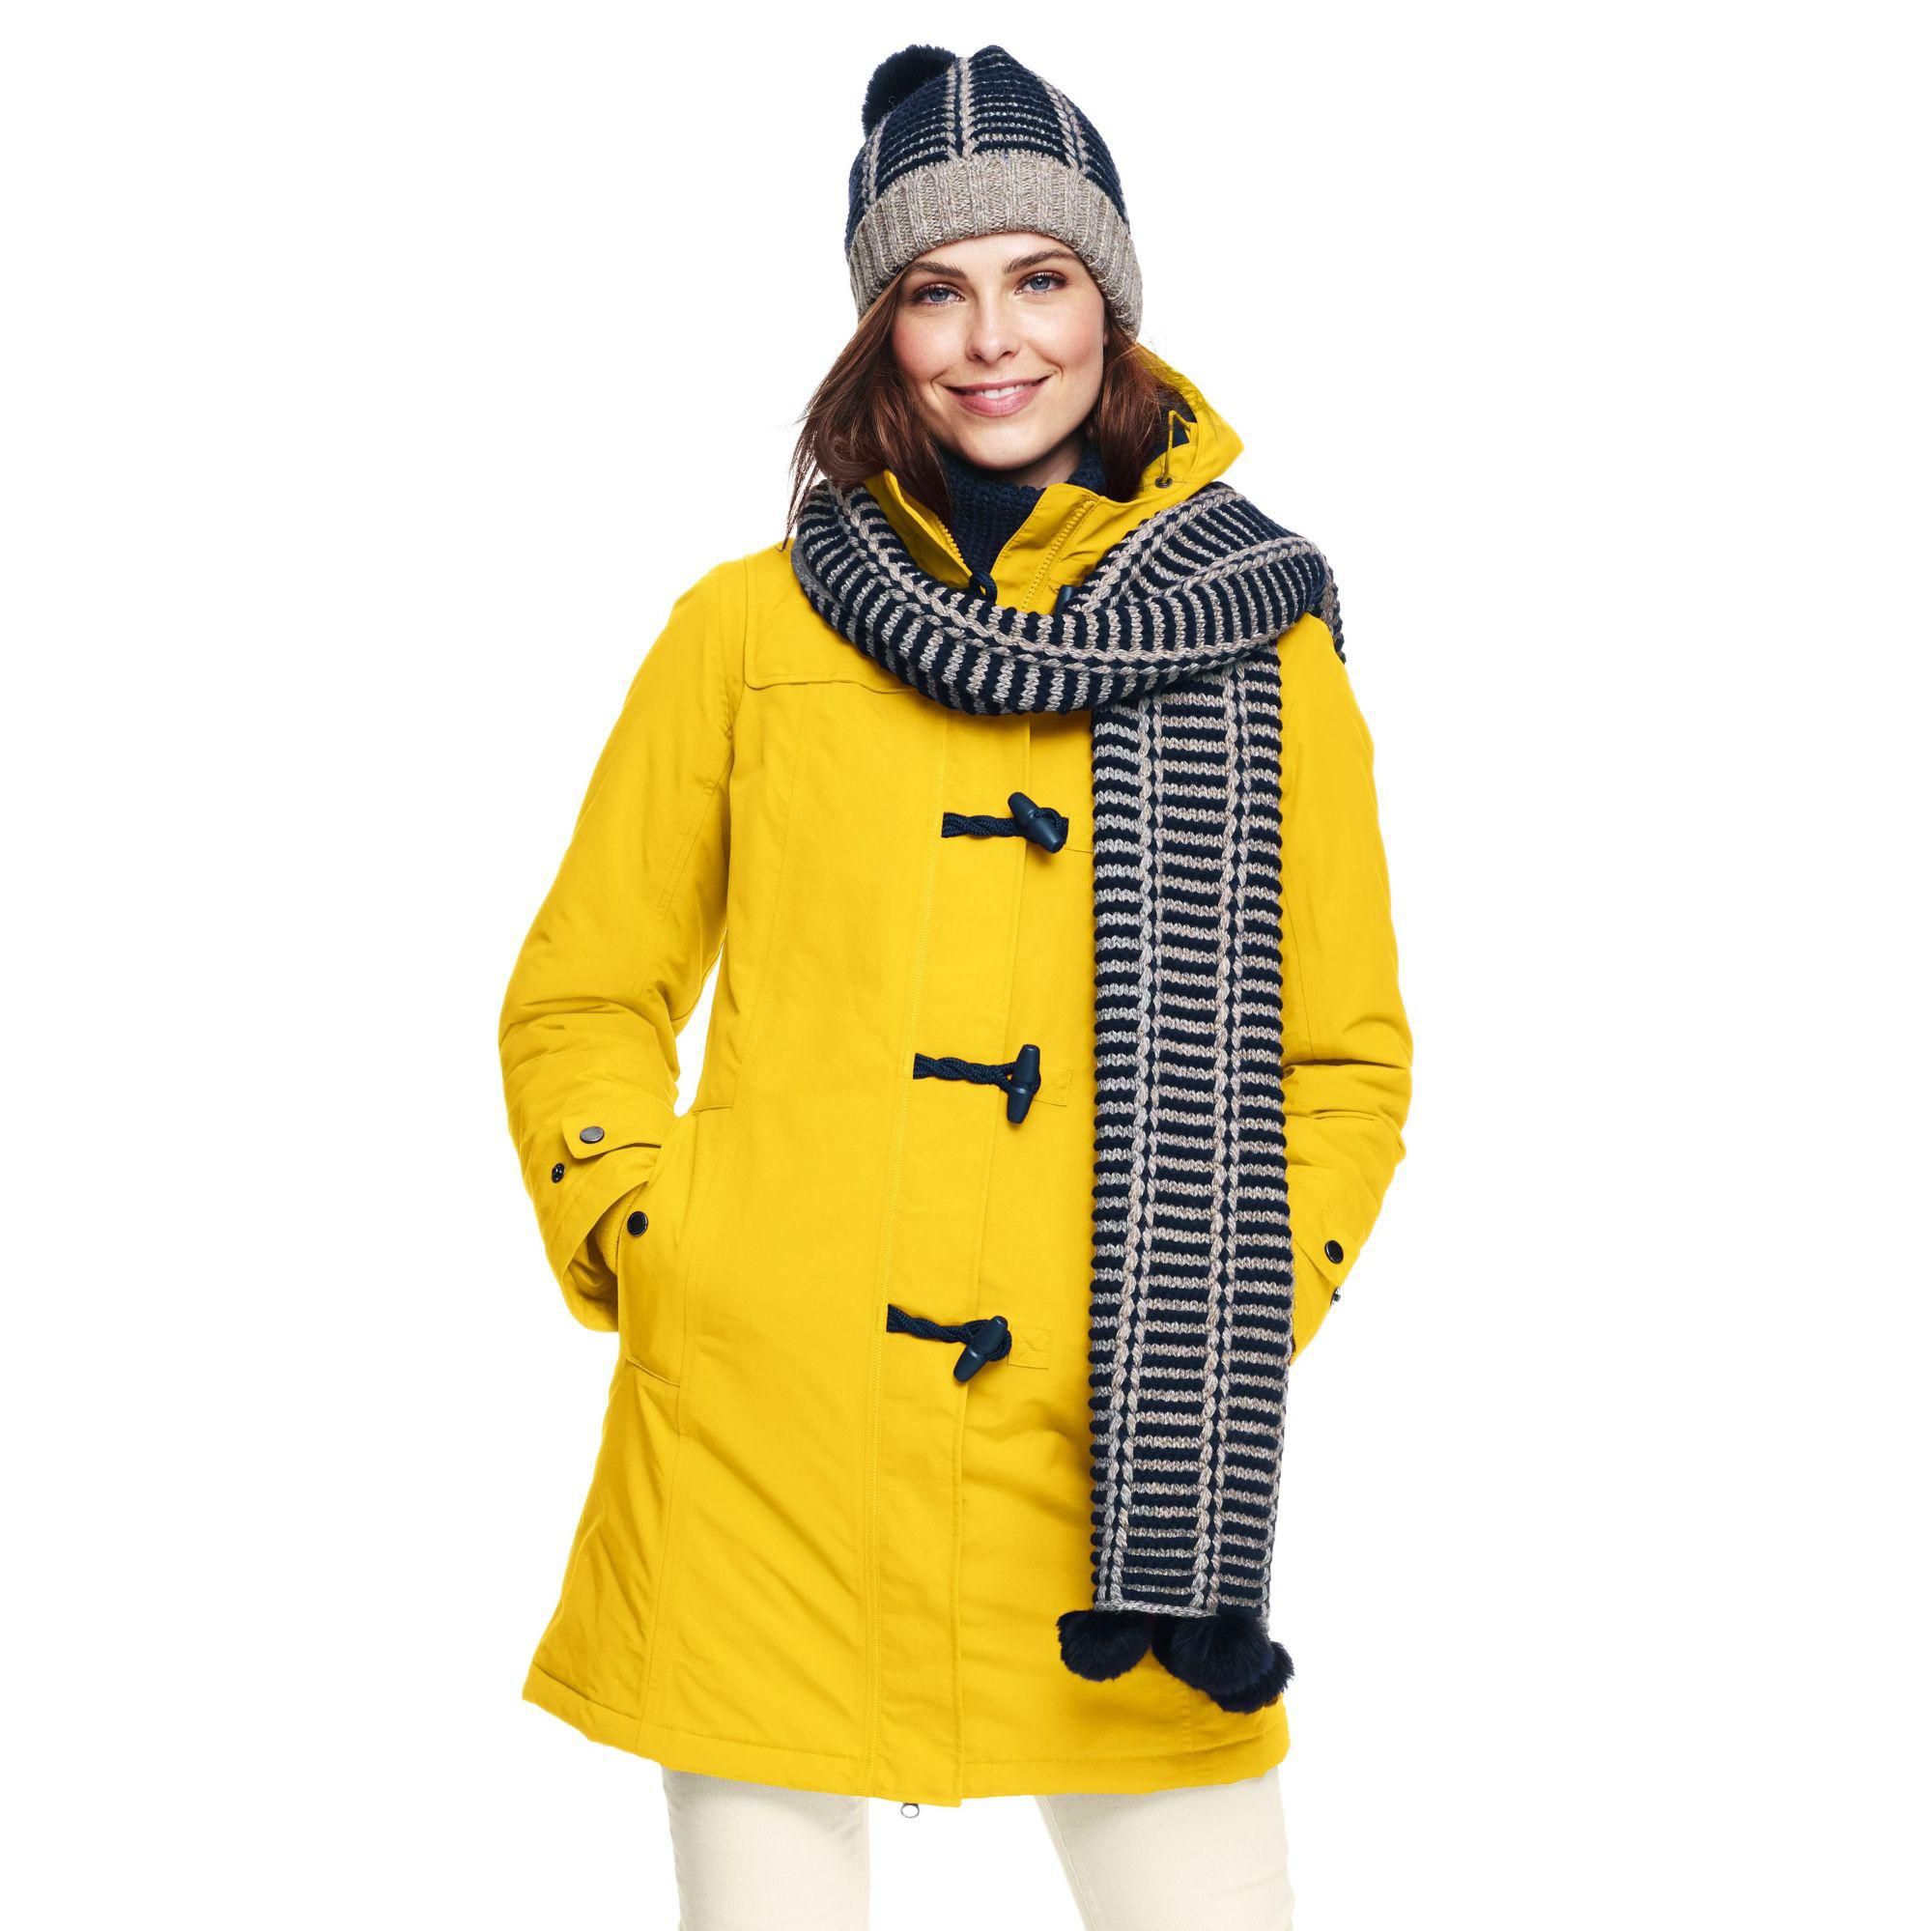 d725074974f0 Lands  End Yellow Waterproof Duffle Coat in Yellow - Lyst